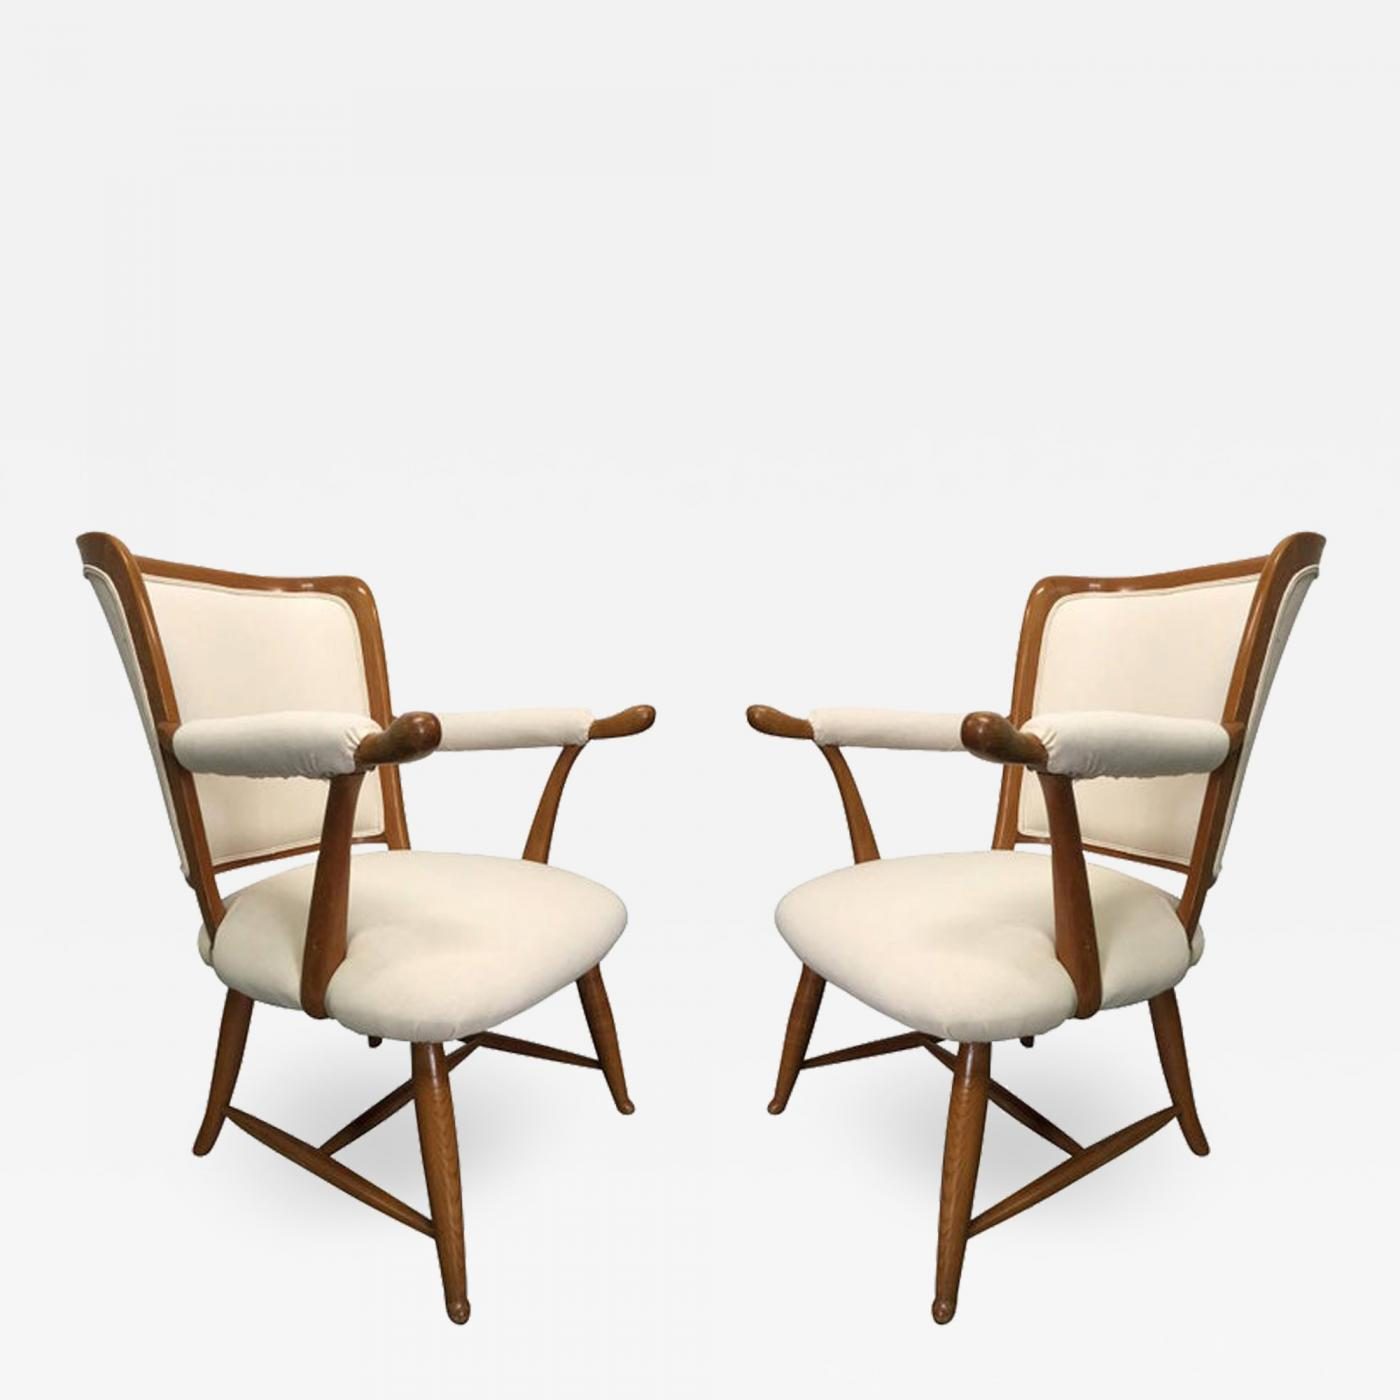 Stupendous Pair Of 1950S French Country Armchairs Caraccident5 Cool Chair Designs And Ideas Caraccident5Info